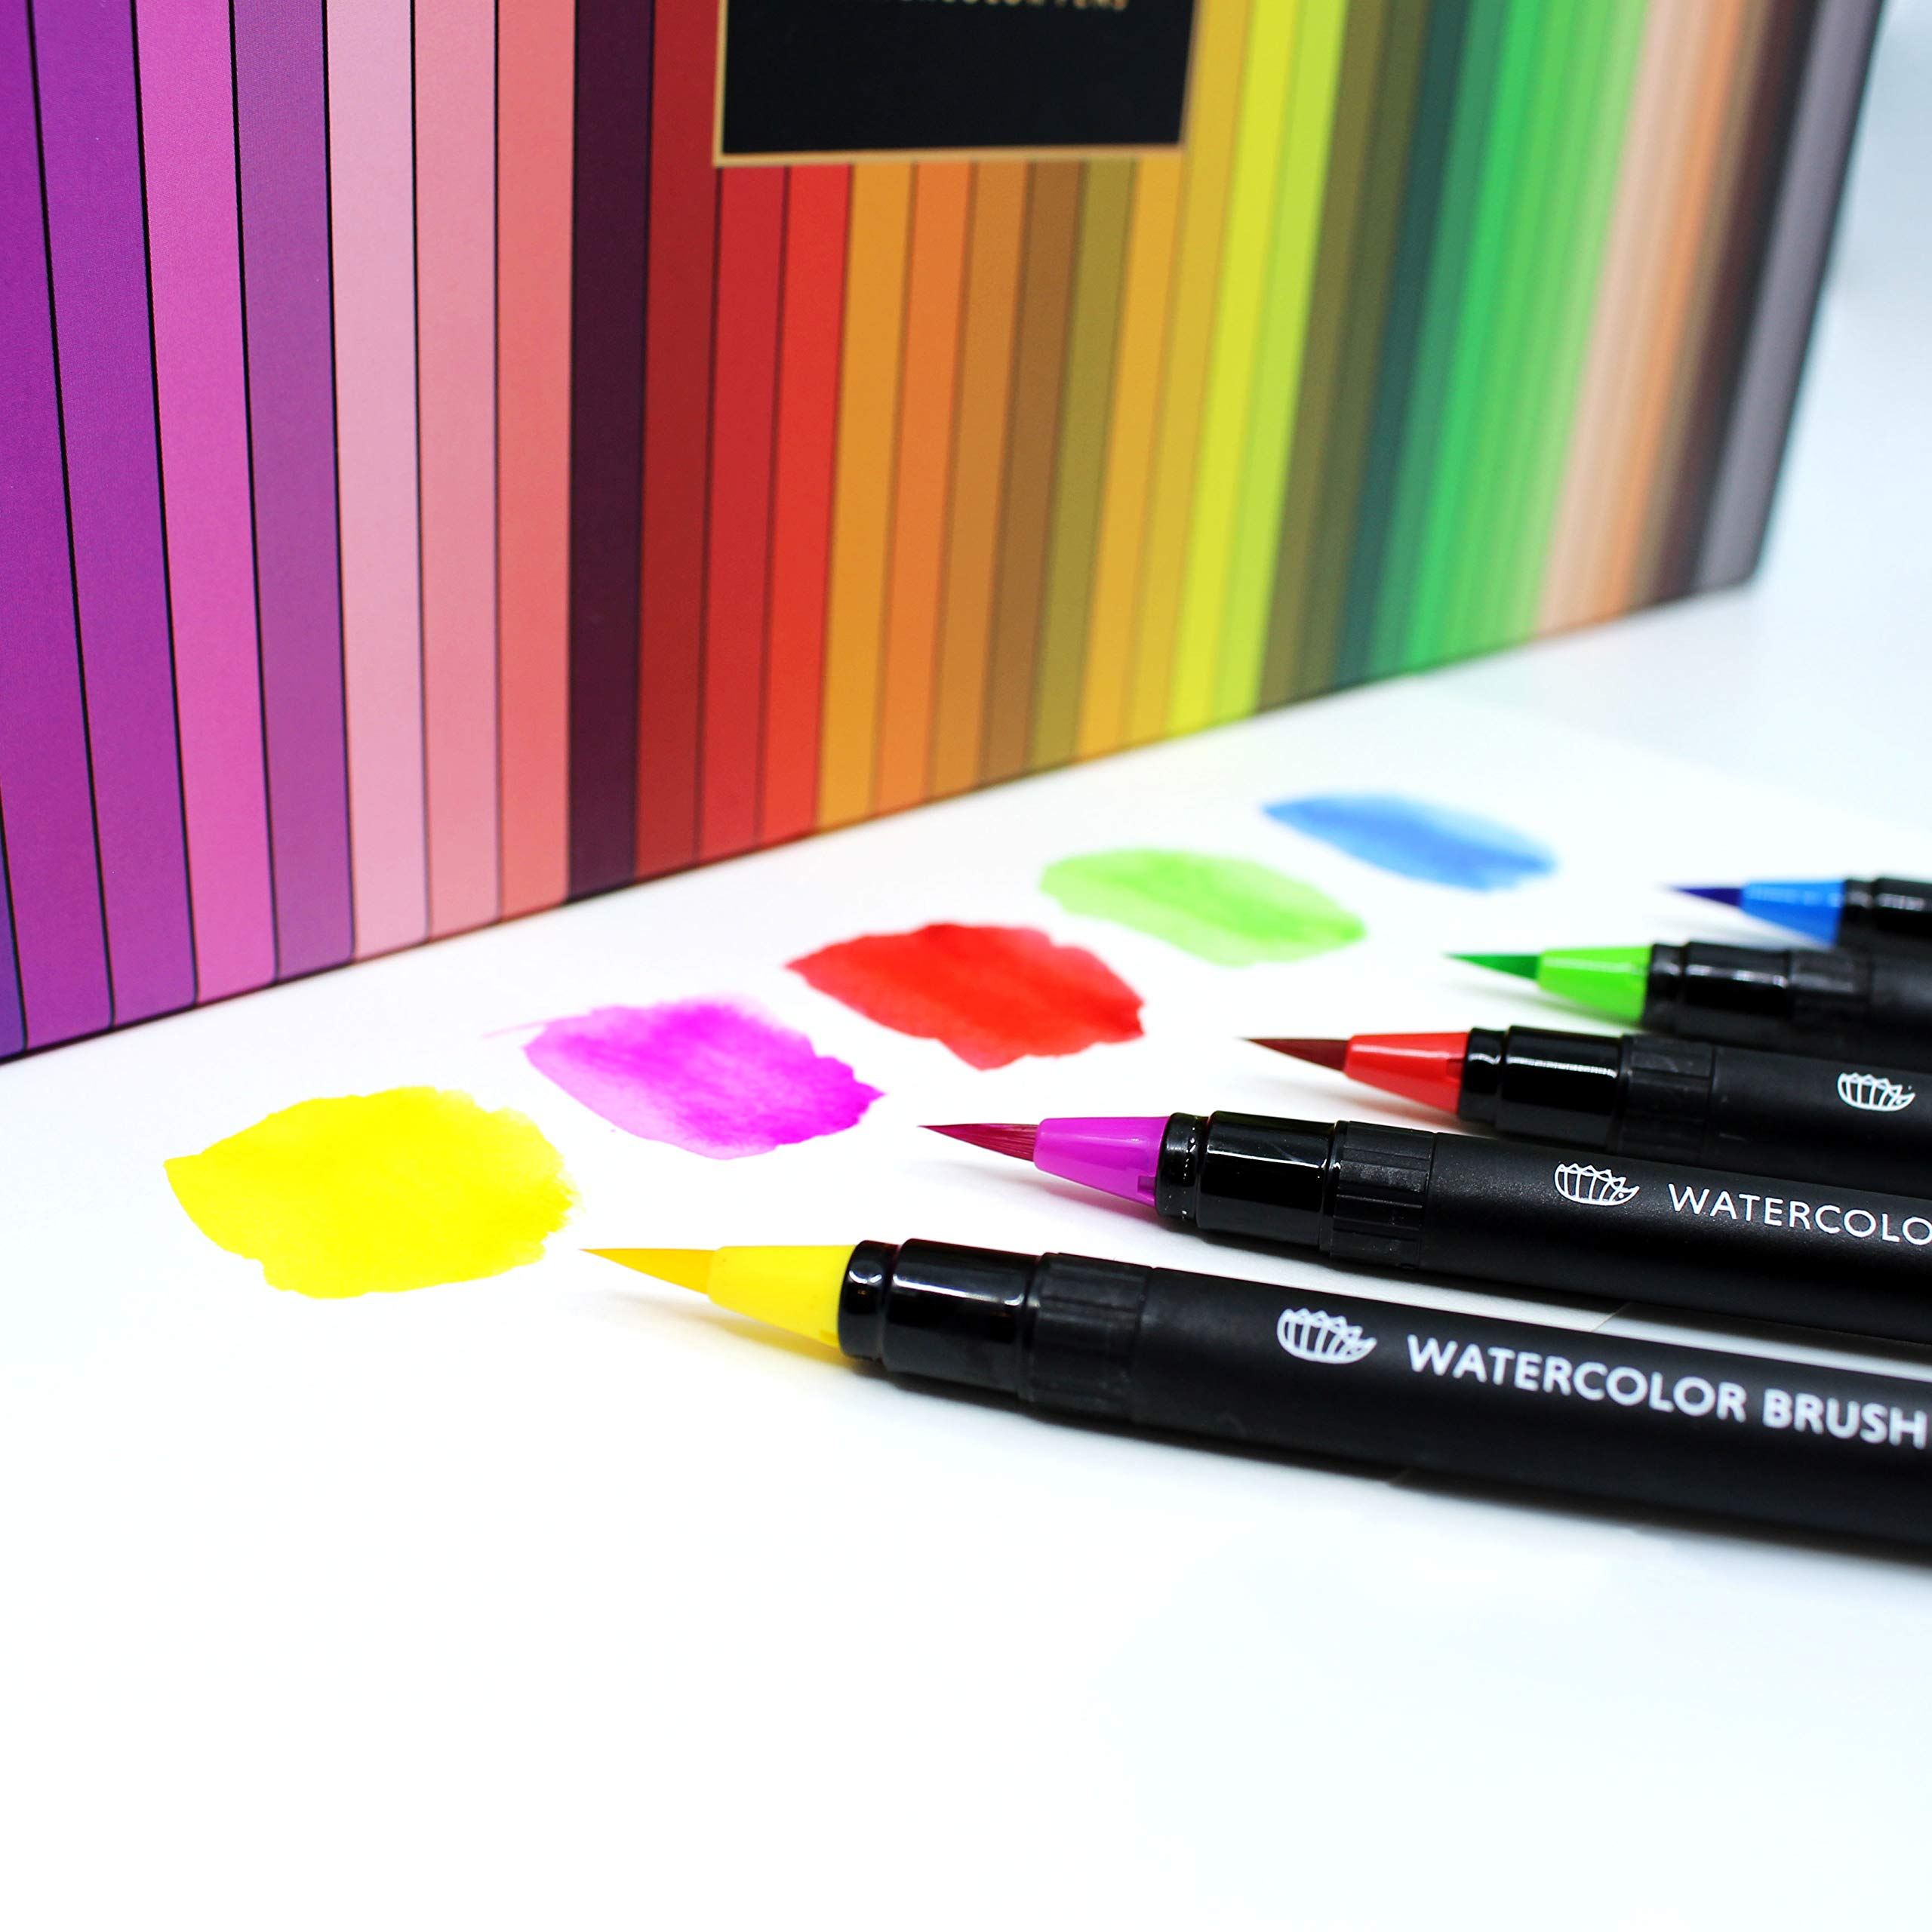 Gift Box : 48 Premium Watercolor Brush Pens, Highly Blendable, No Streaks, Water Color Markers, Unbelievable Value, Water Brush Pen, for Beginner to Professional Artist by Dab and Dot Markers (Image #8)